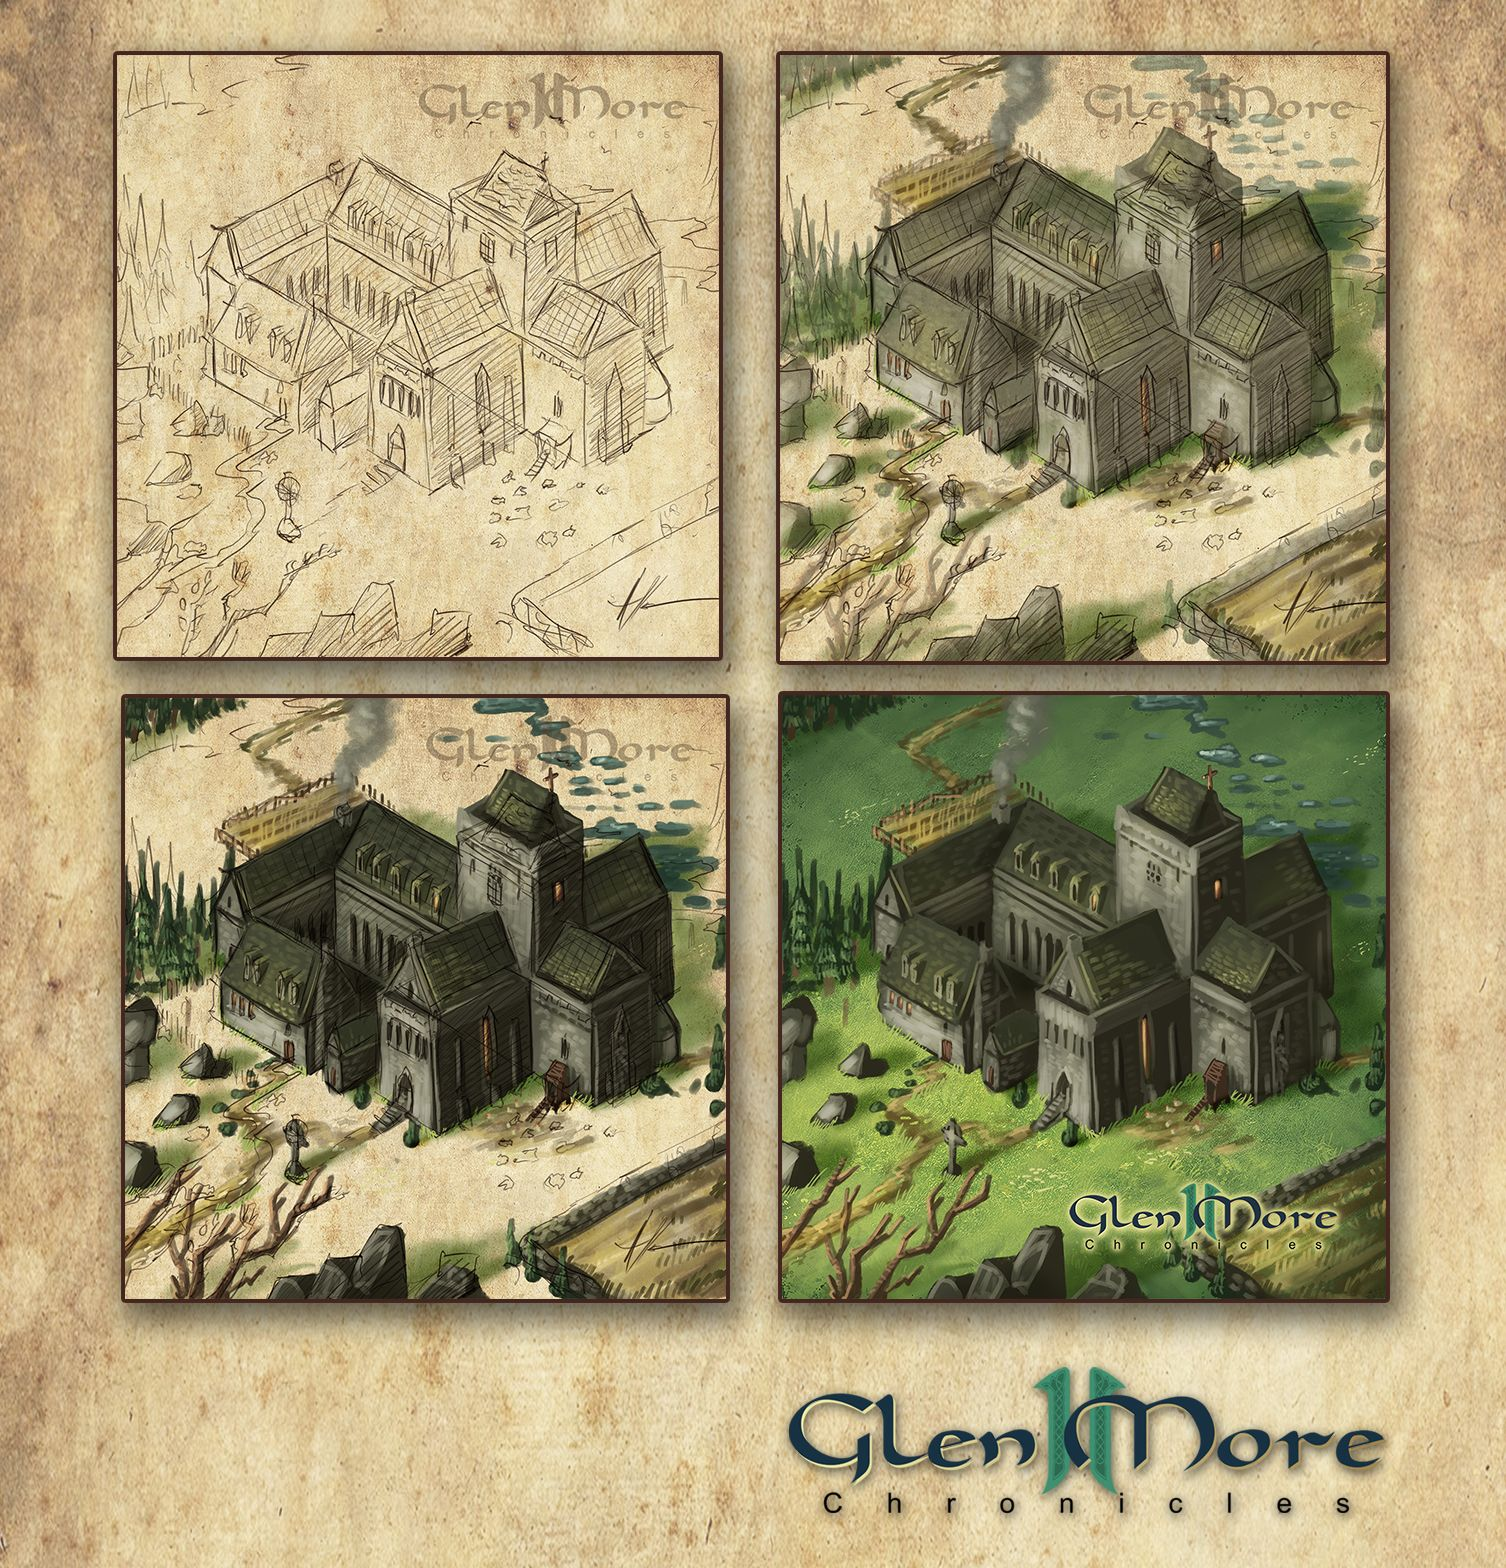 Hendrik Noack & die Kunst von Glen More II: Chronicles